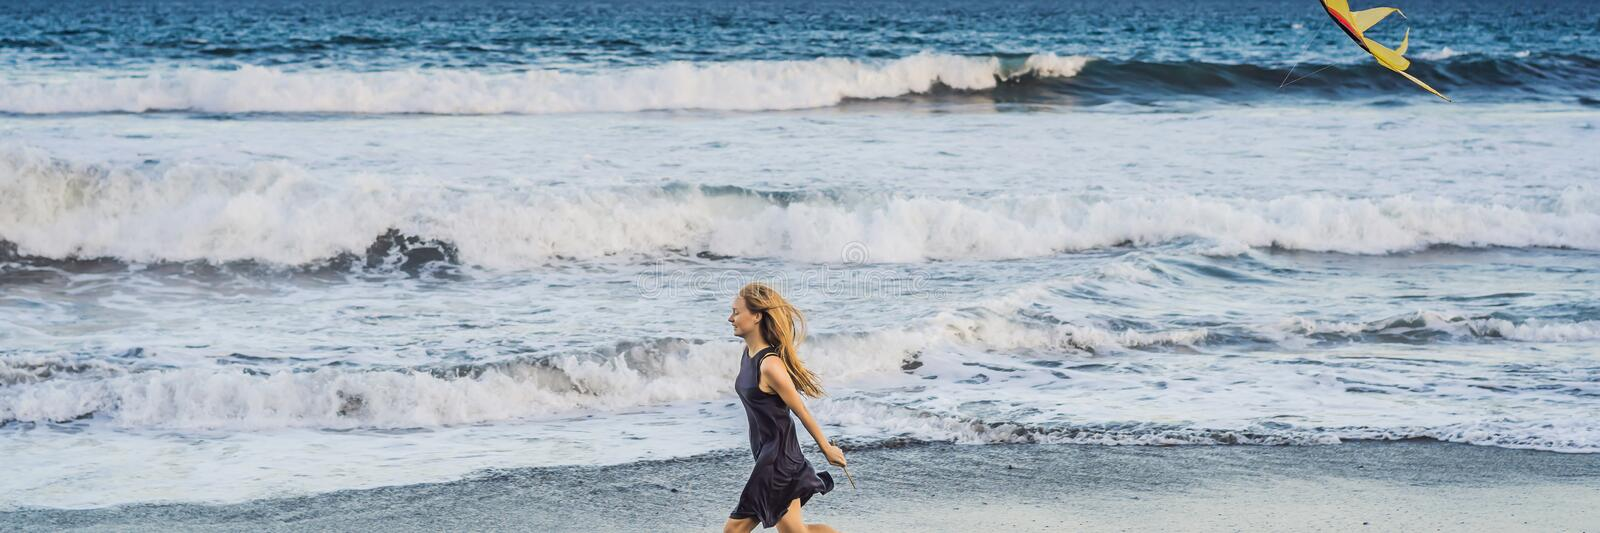 A young woman launches a kite on the beach. Dream, aspirations, future plans BANNER, LONG FORMAT royalty free stock image